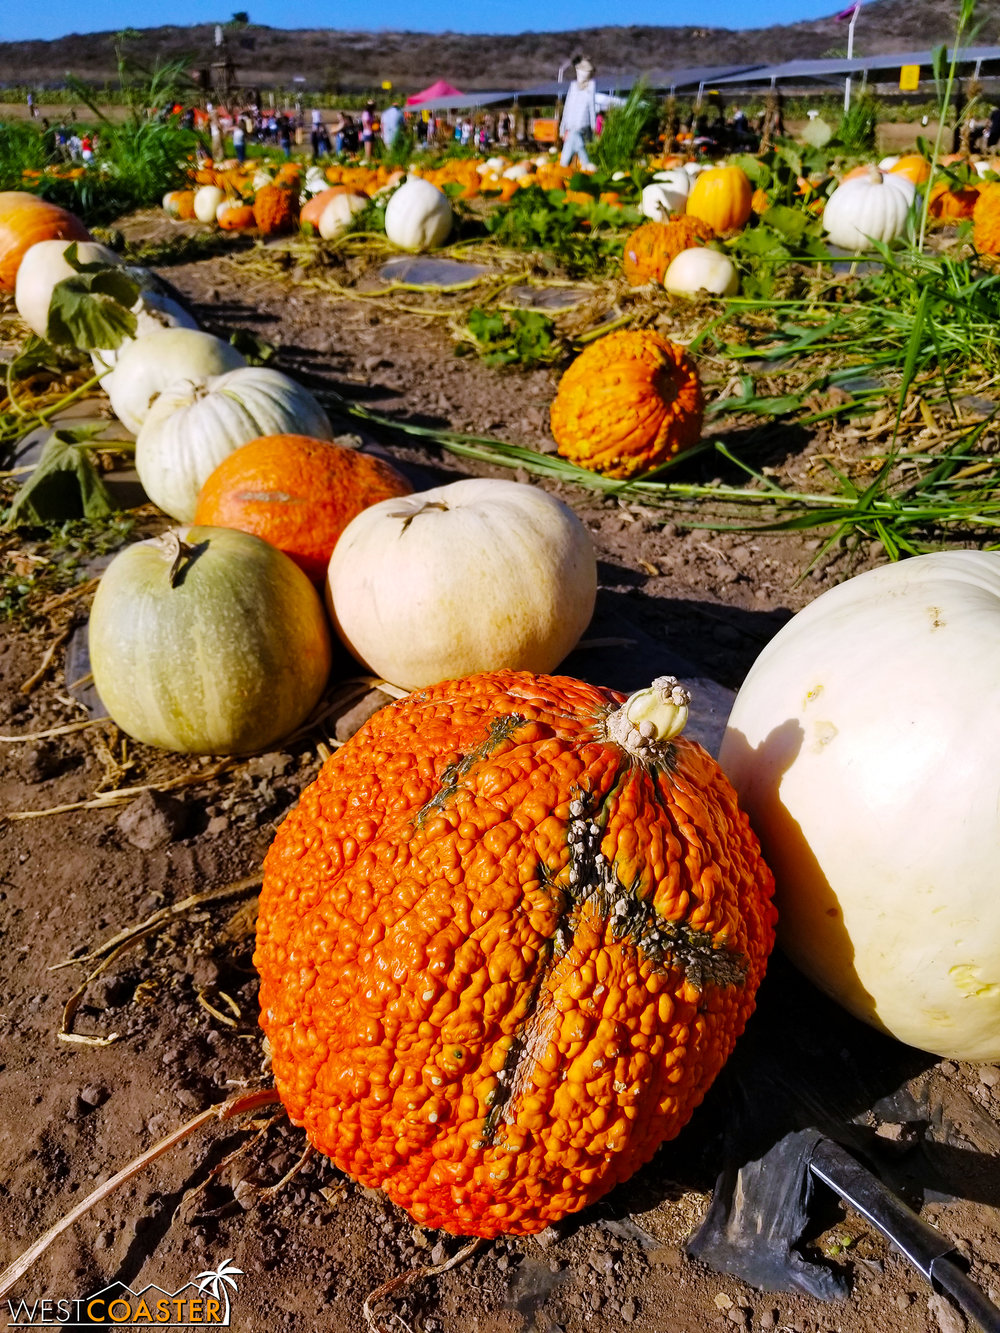 Pumpkins of all different types, including the warty kind.